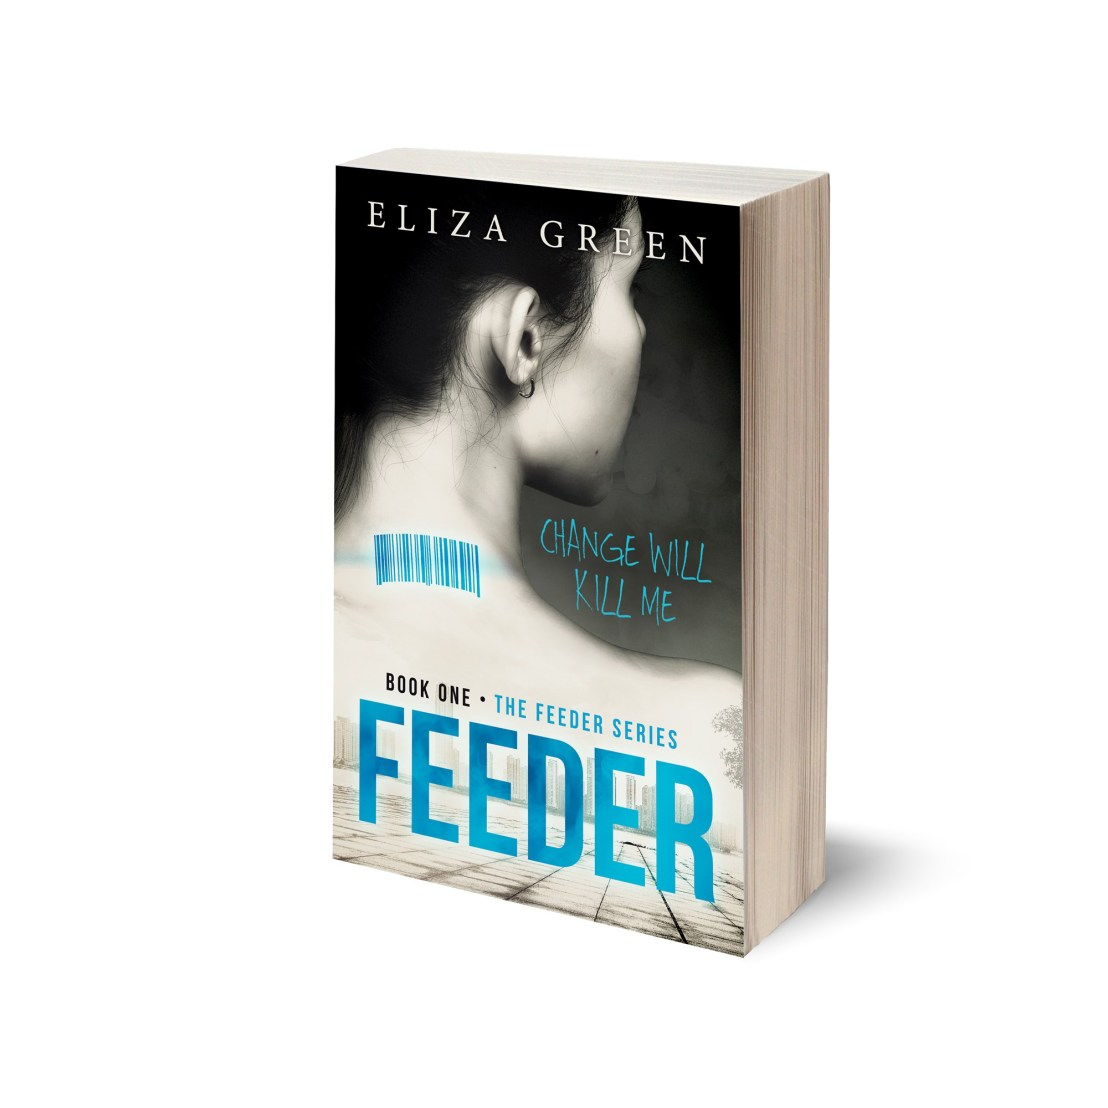 Book Review – Feeder by Eliza Green